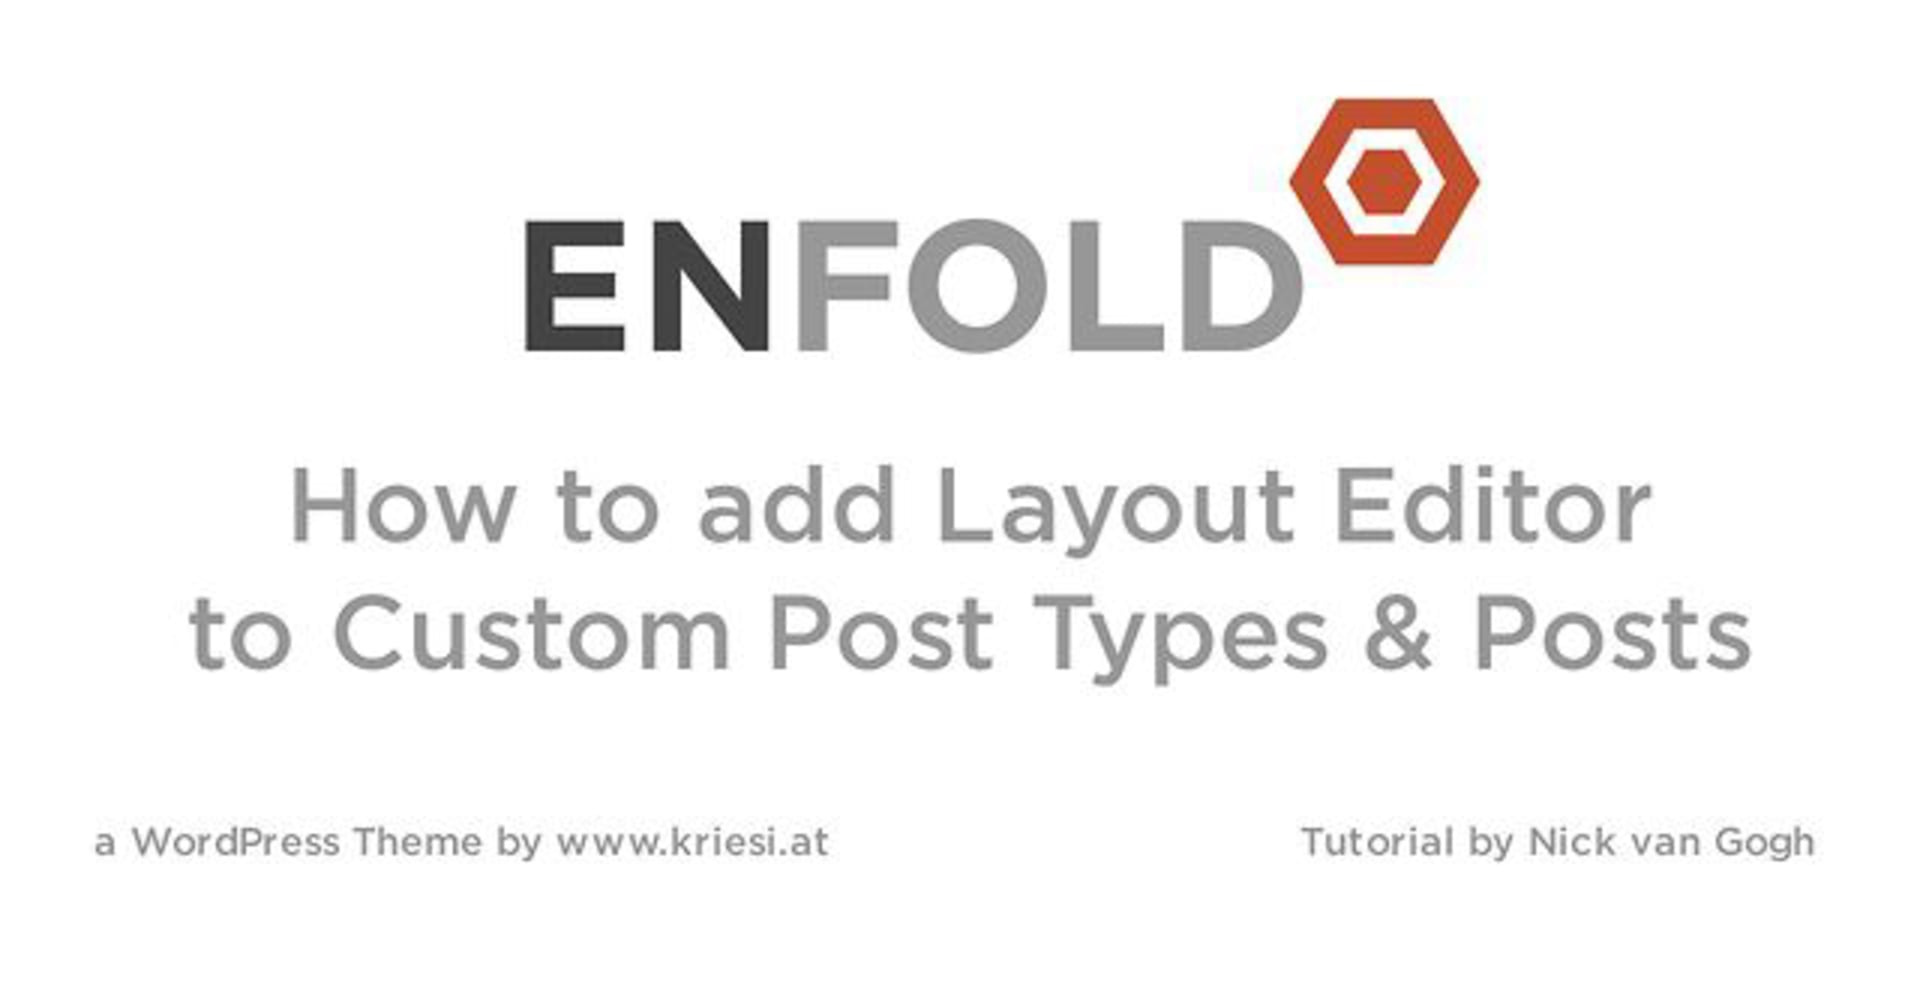 enfold-theme-tutorial-adding-layout-builder-to-custom-post-types-and-posts.jpg